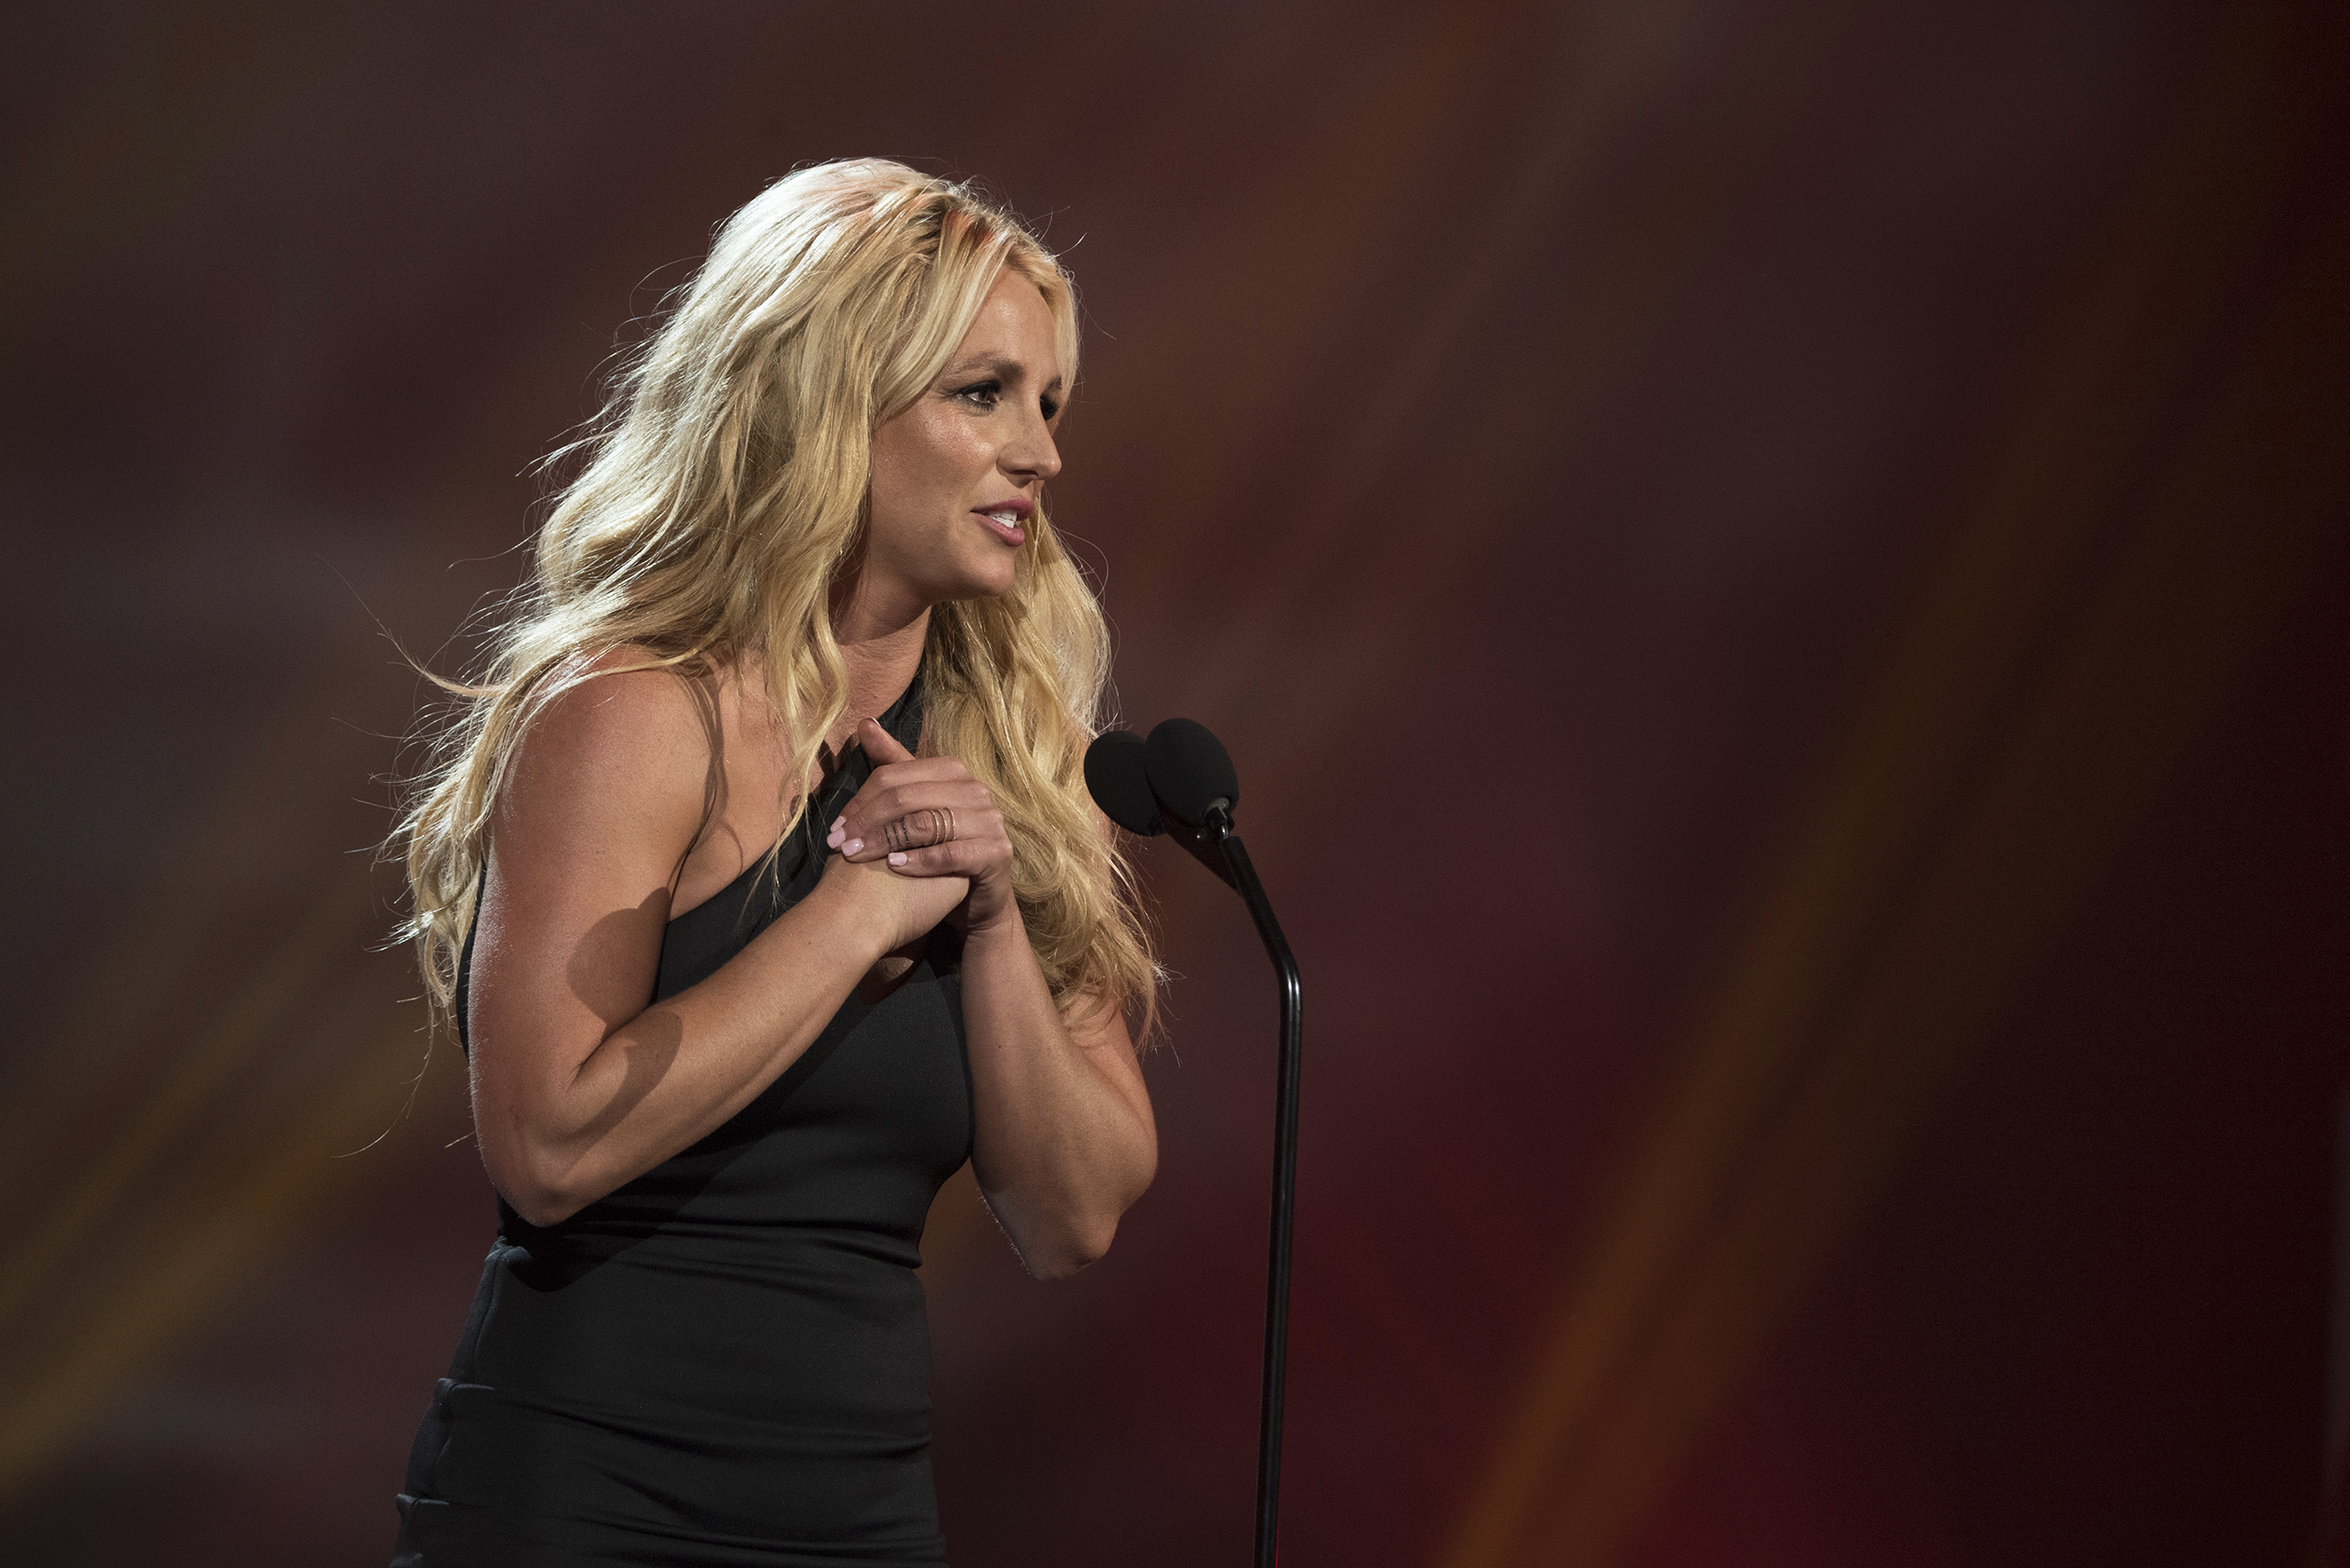 Britney Spears faces battery investigation after housekeeper files complaint over dispute